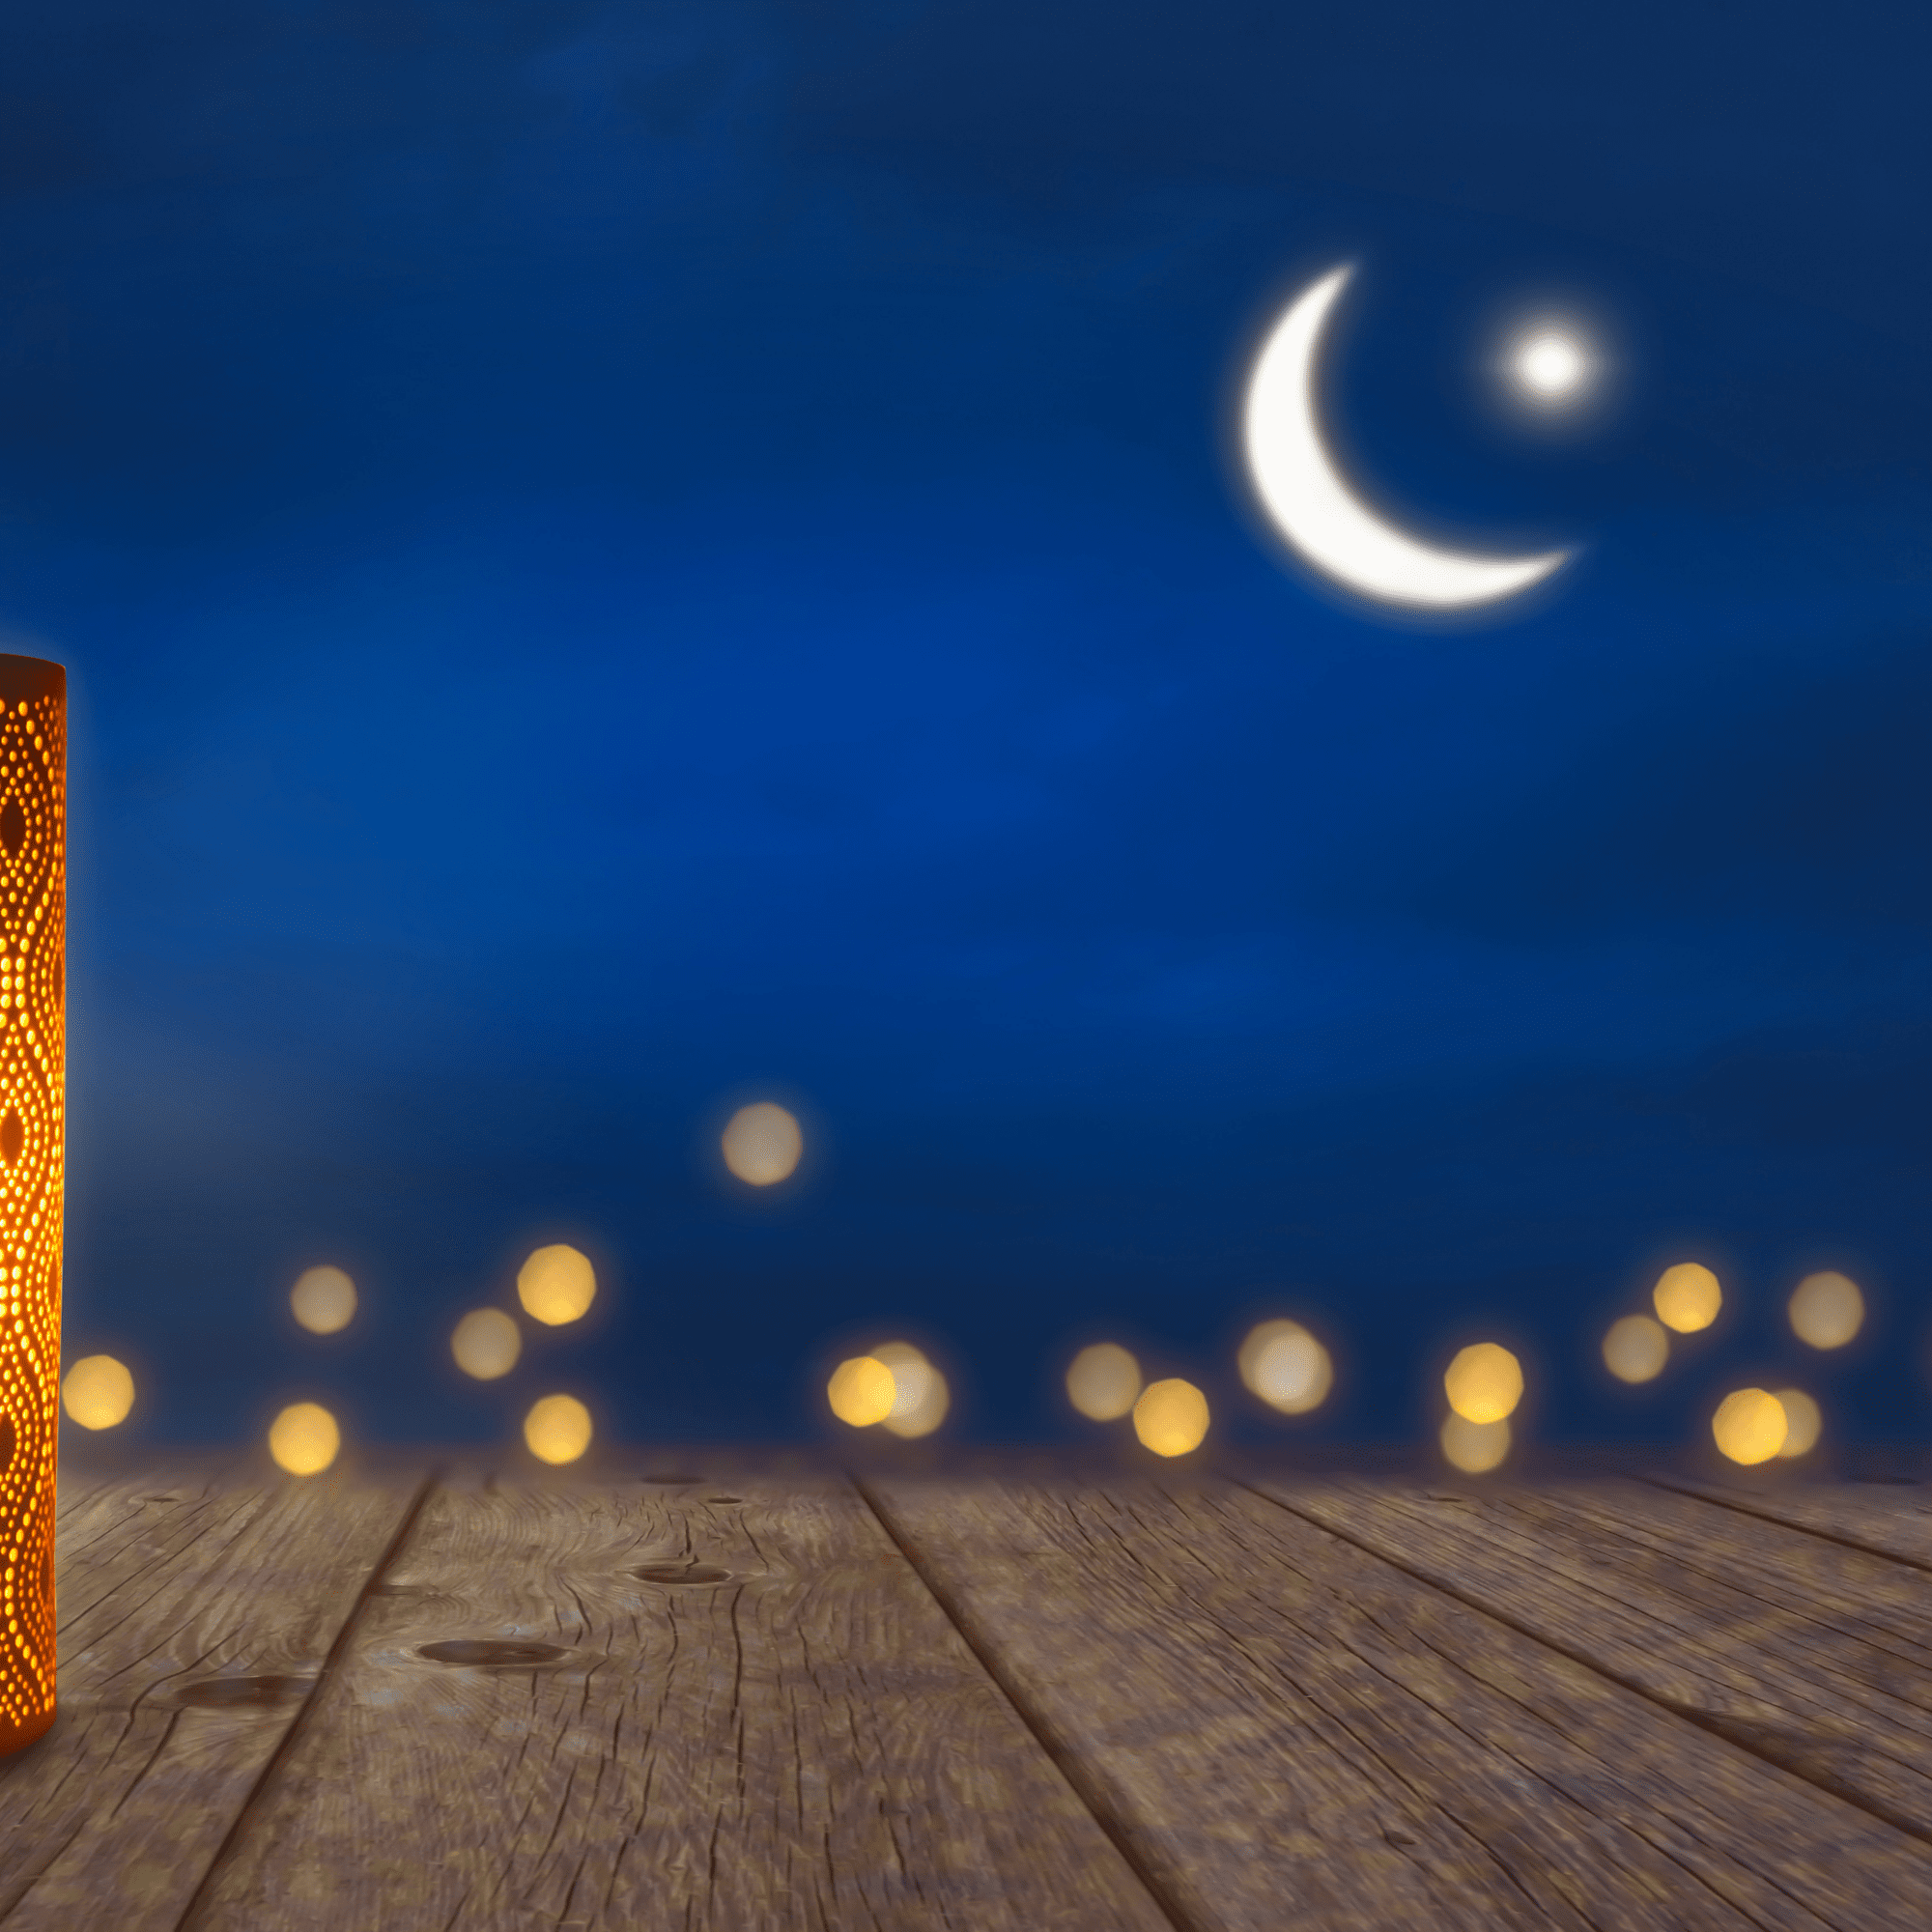 Why Muslims Fast During Ramadan?